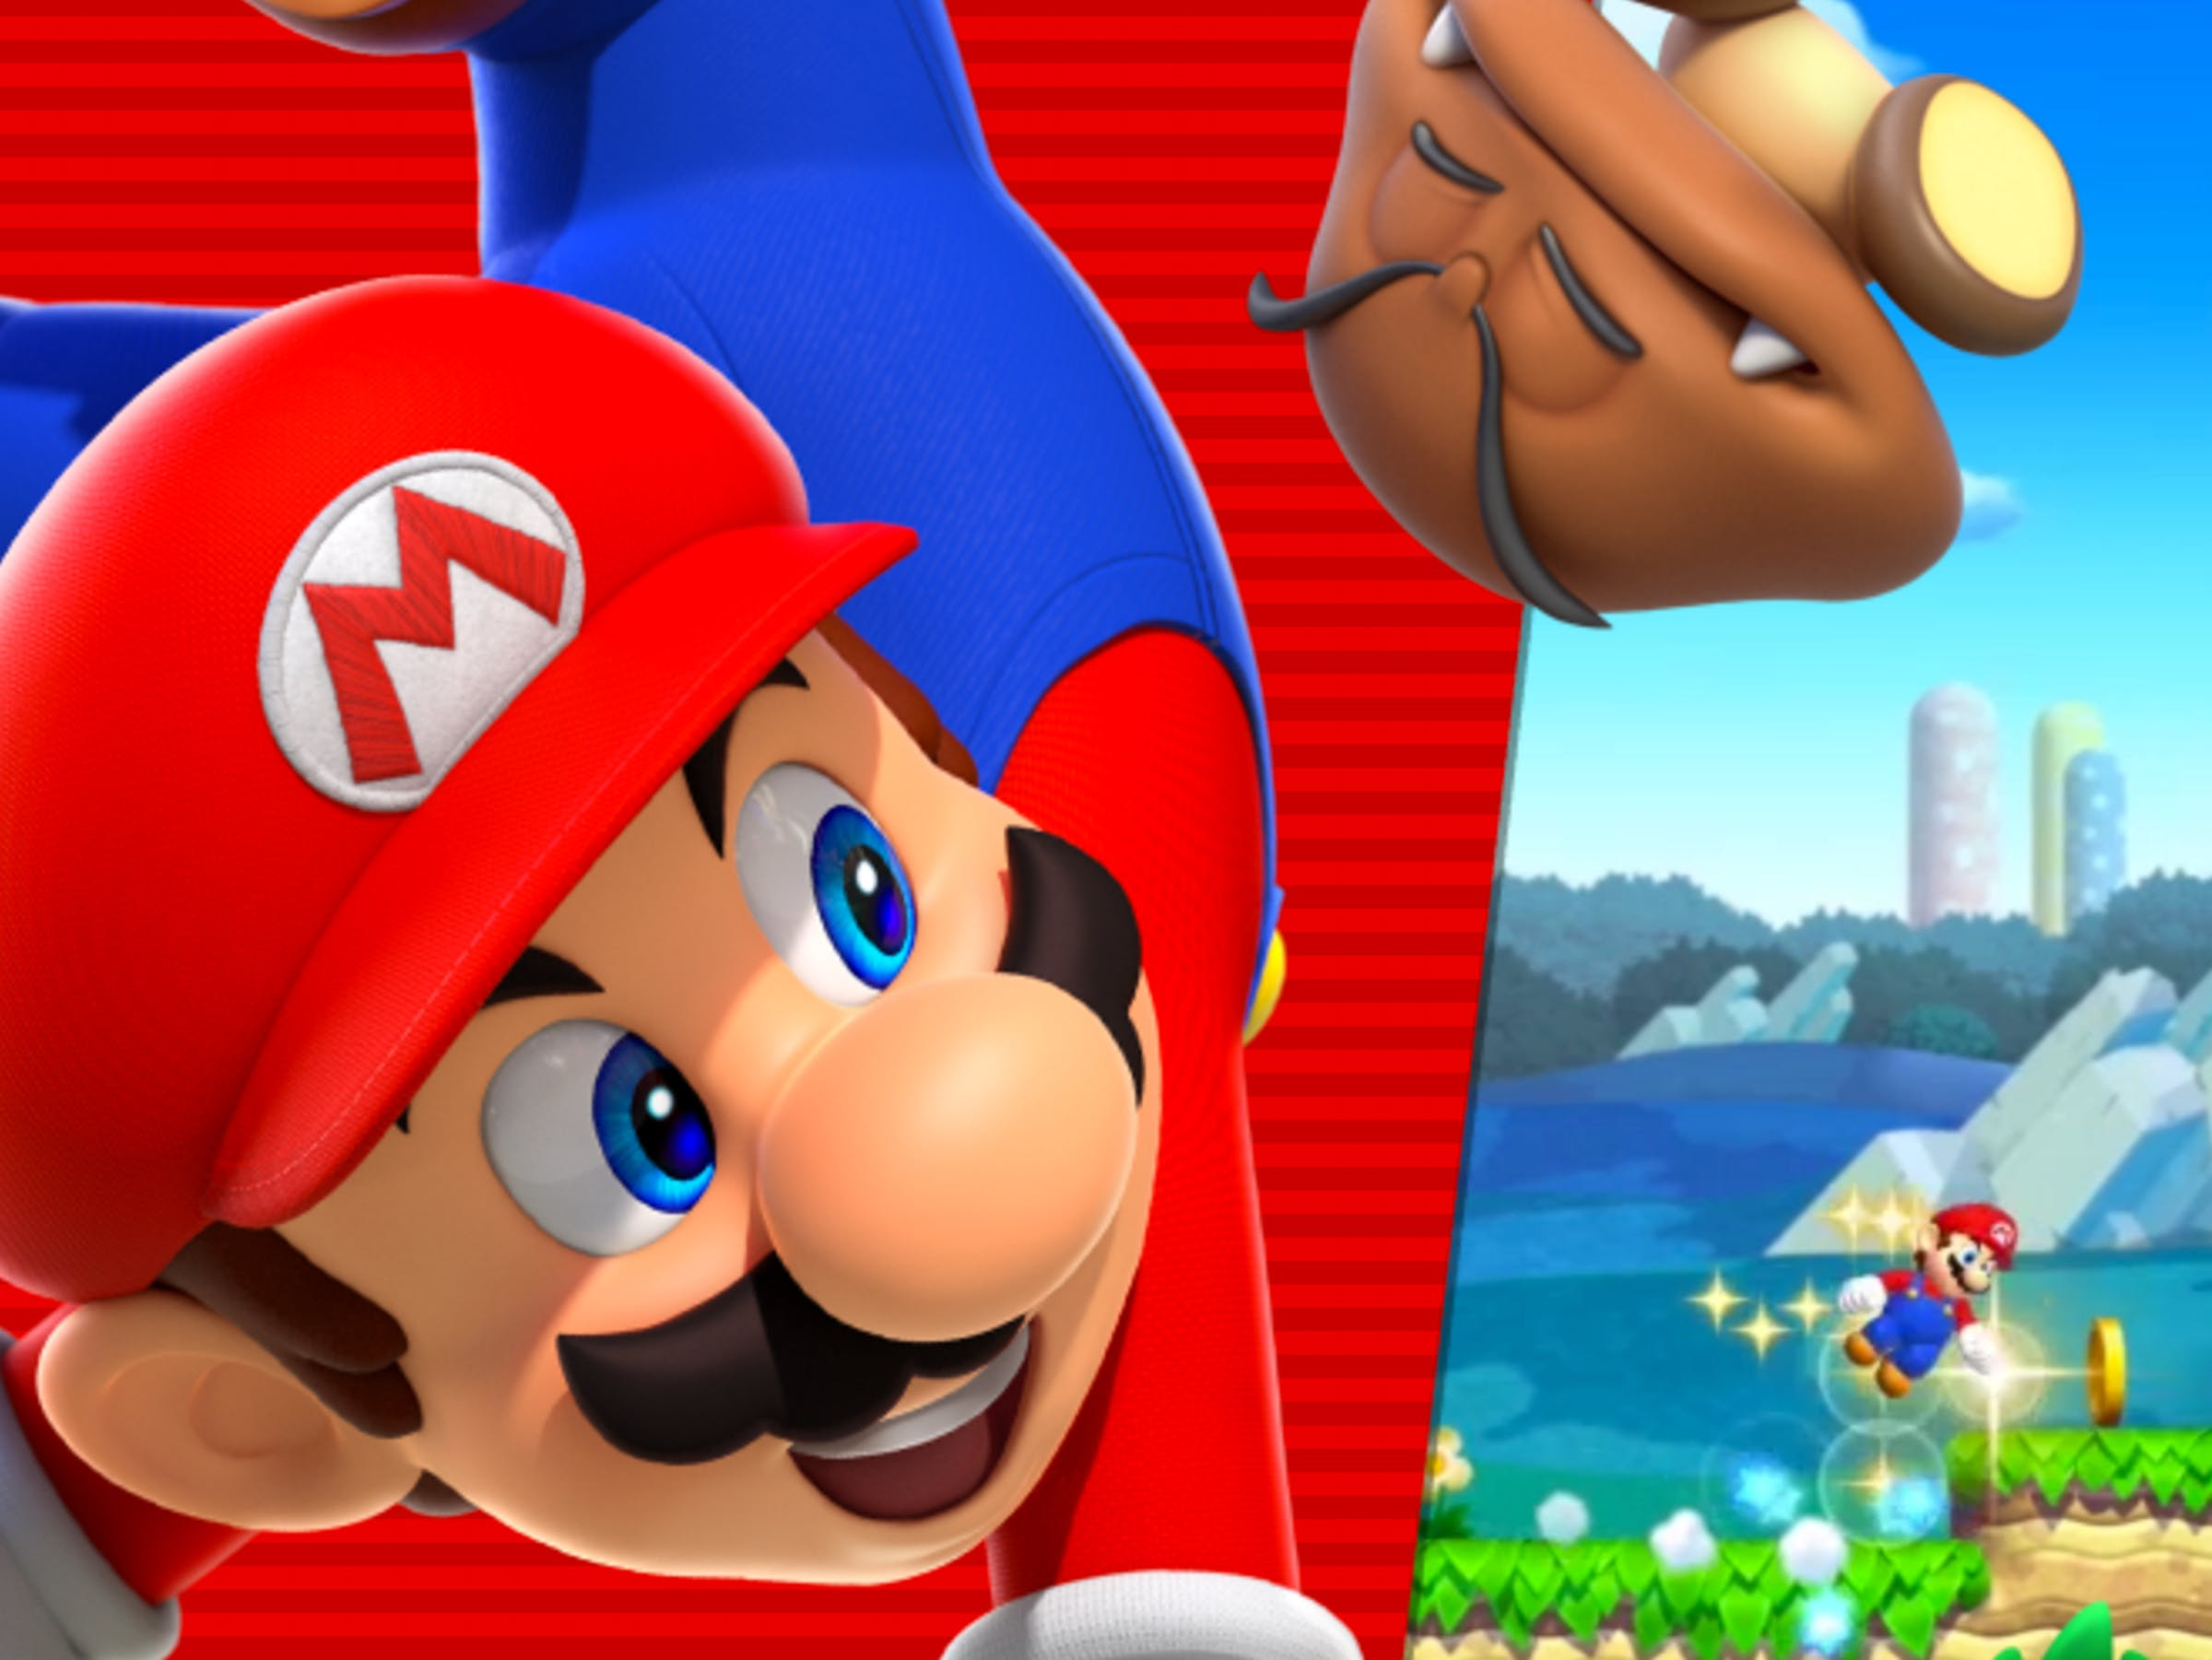 The Best Games to Play If You Like 'Super Mario Run' | Inverse